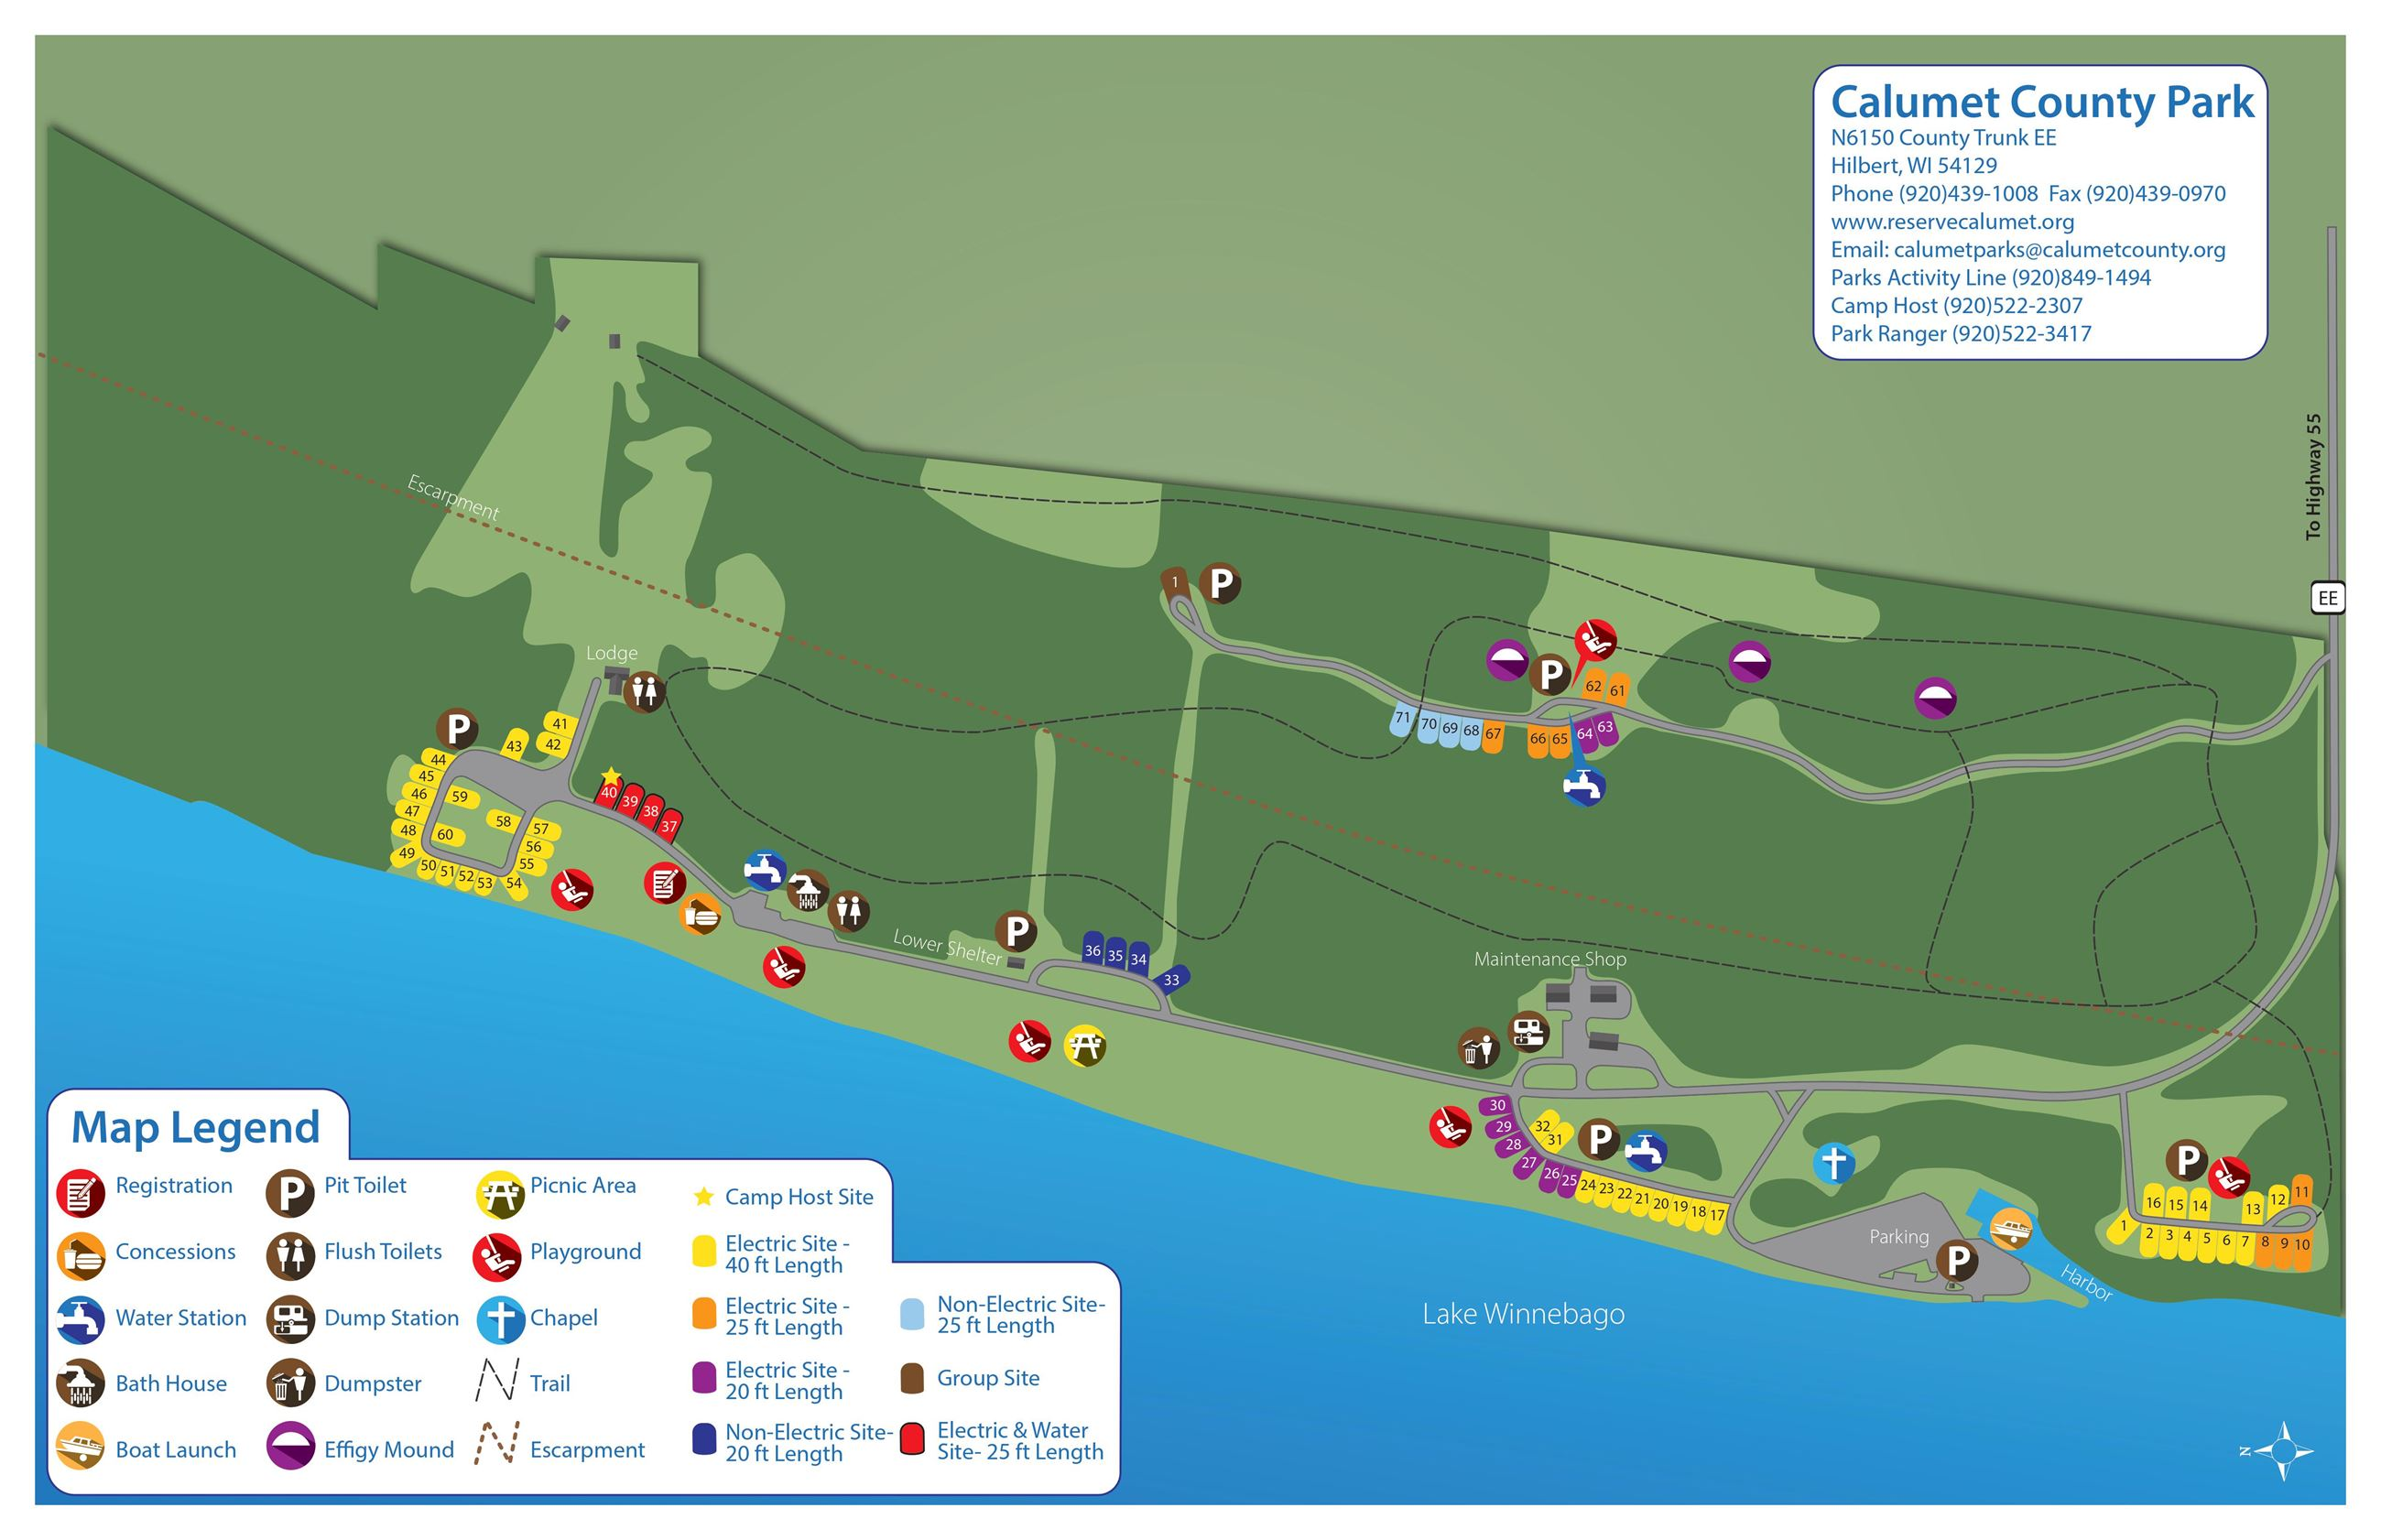 Color map of the campground at Calumet County Park